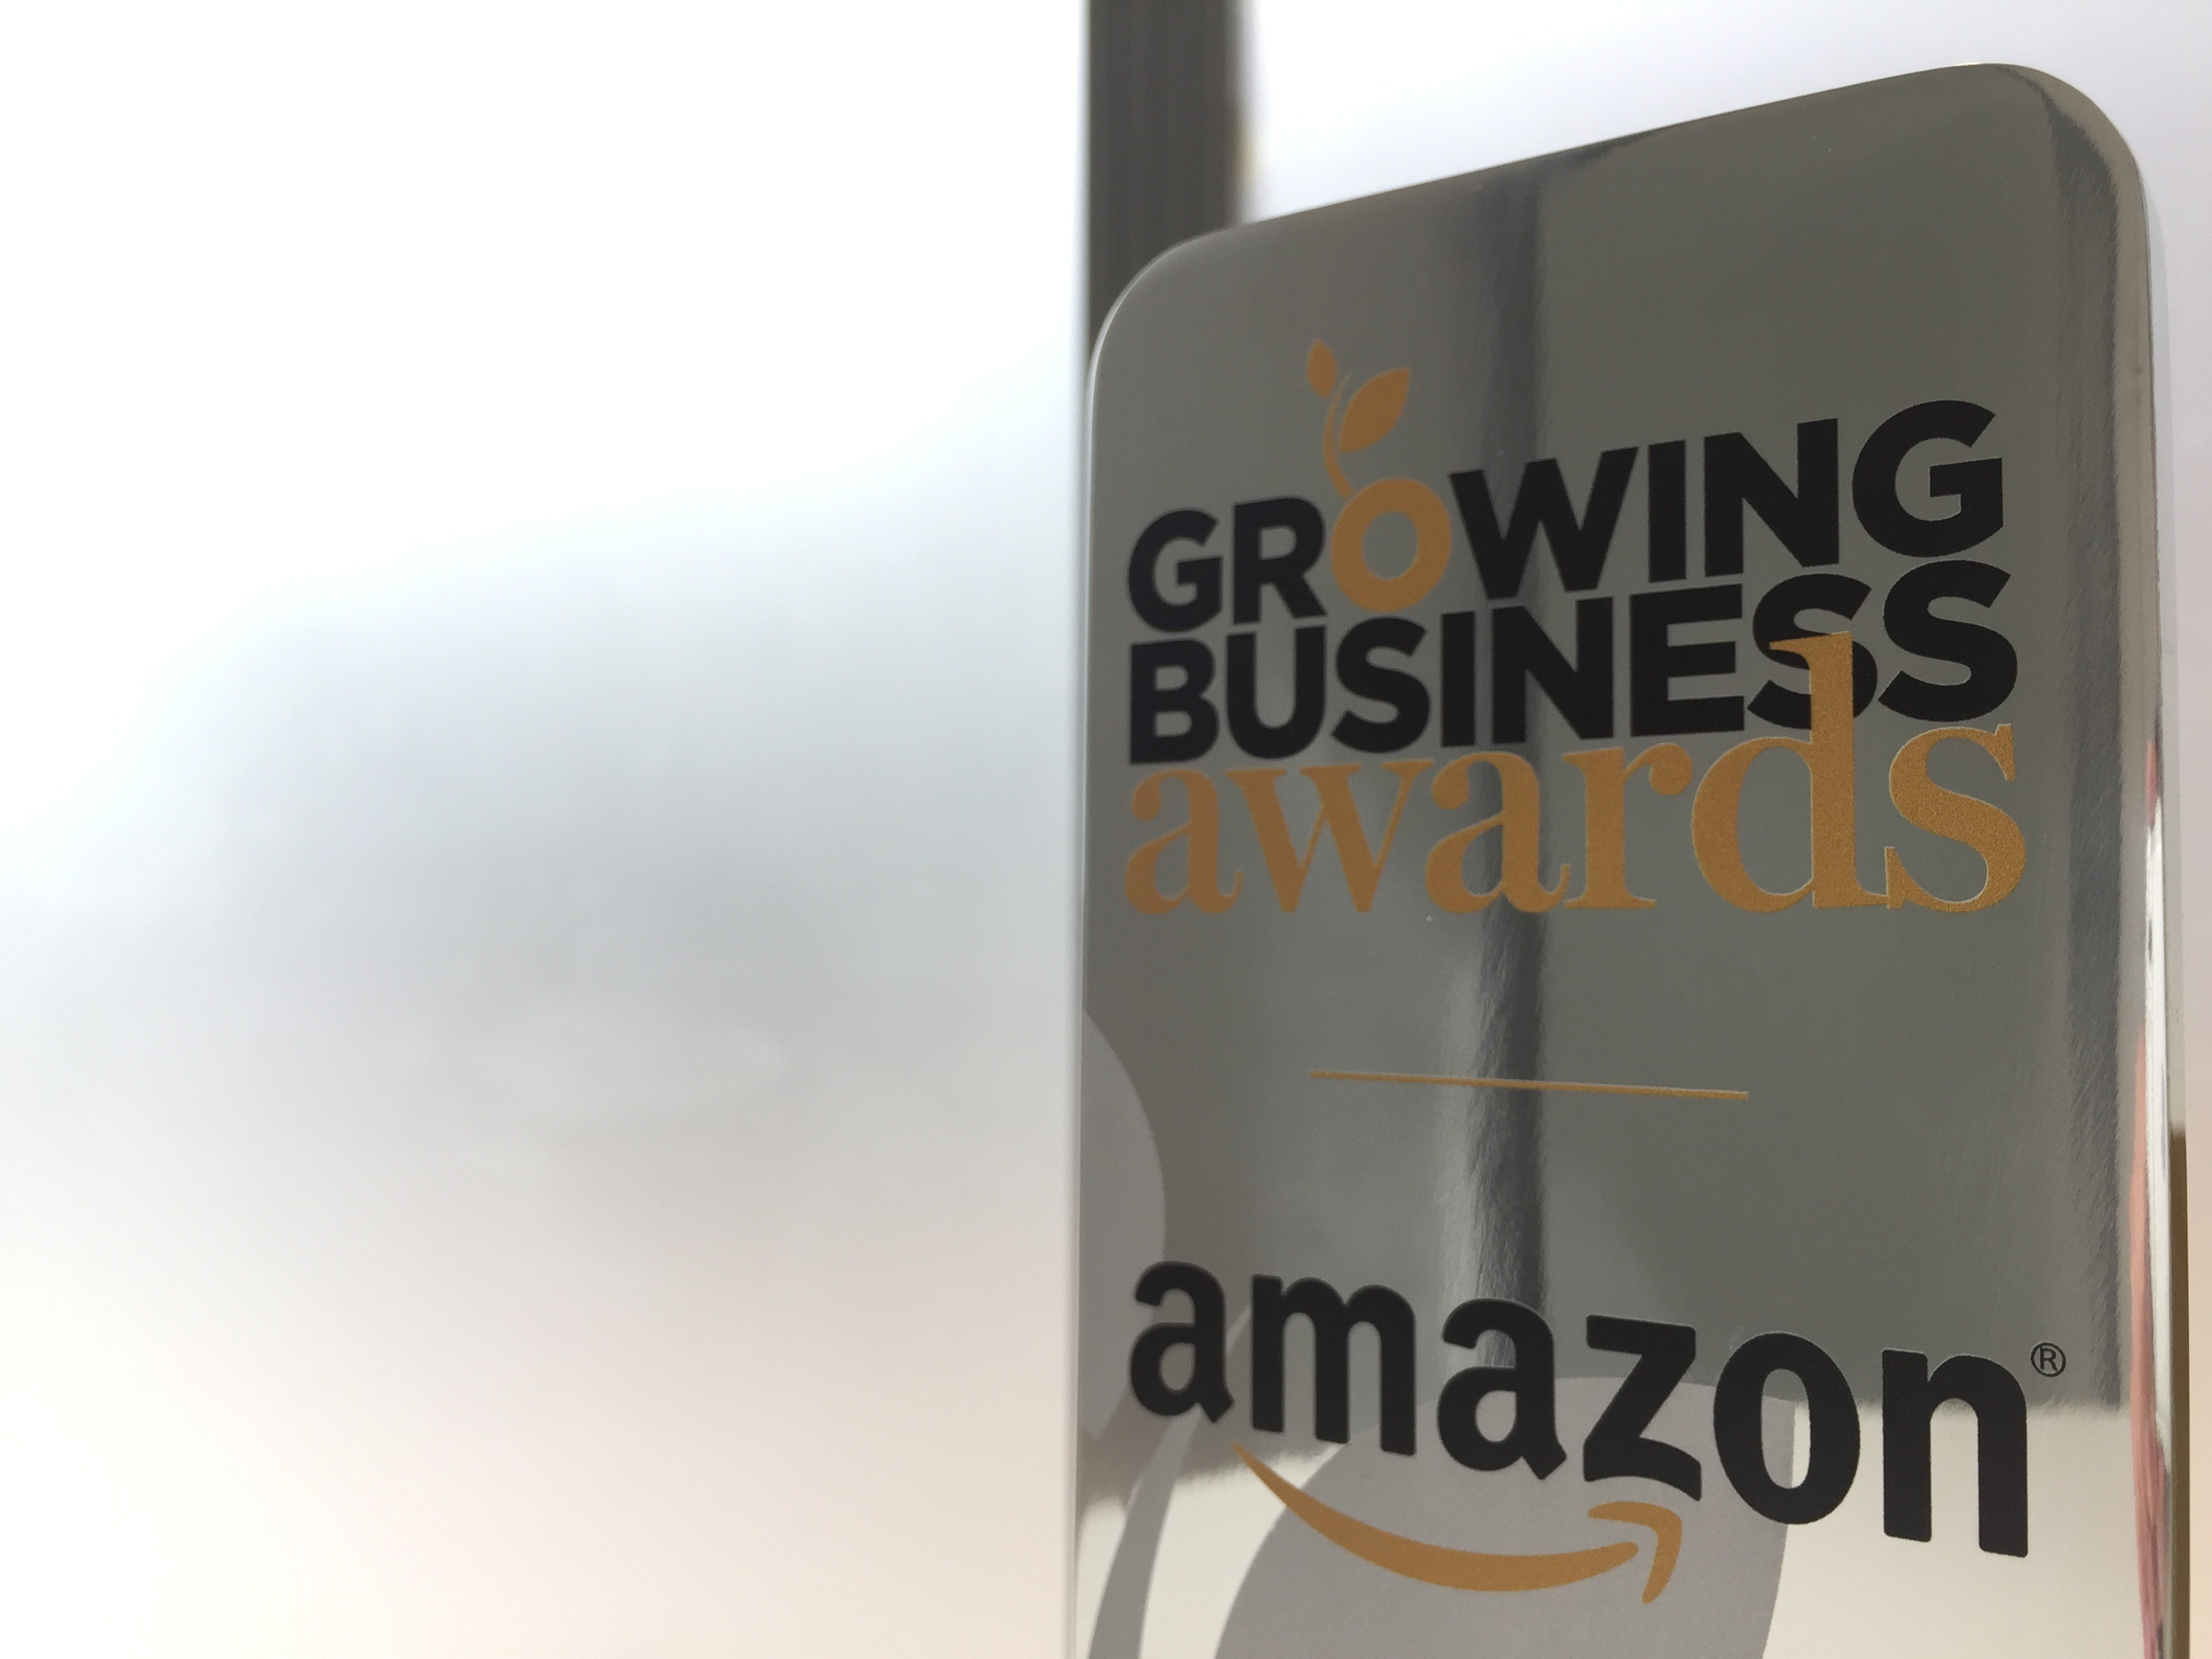 CLEAN a finalist at the Amazon Growing Business Awards - News - CLEAN Services